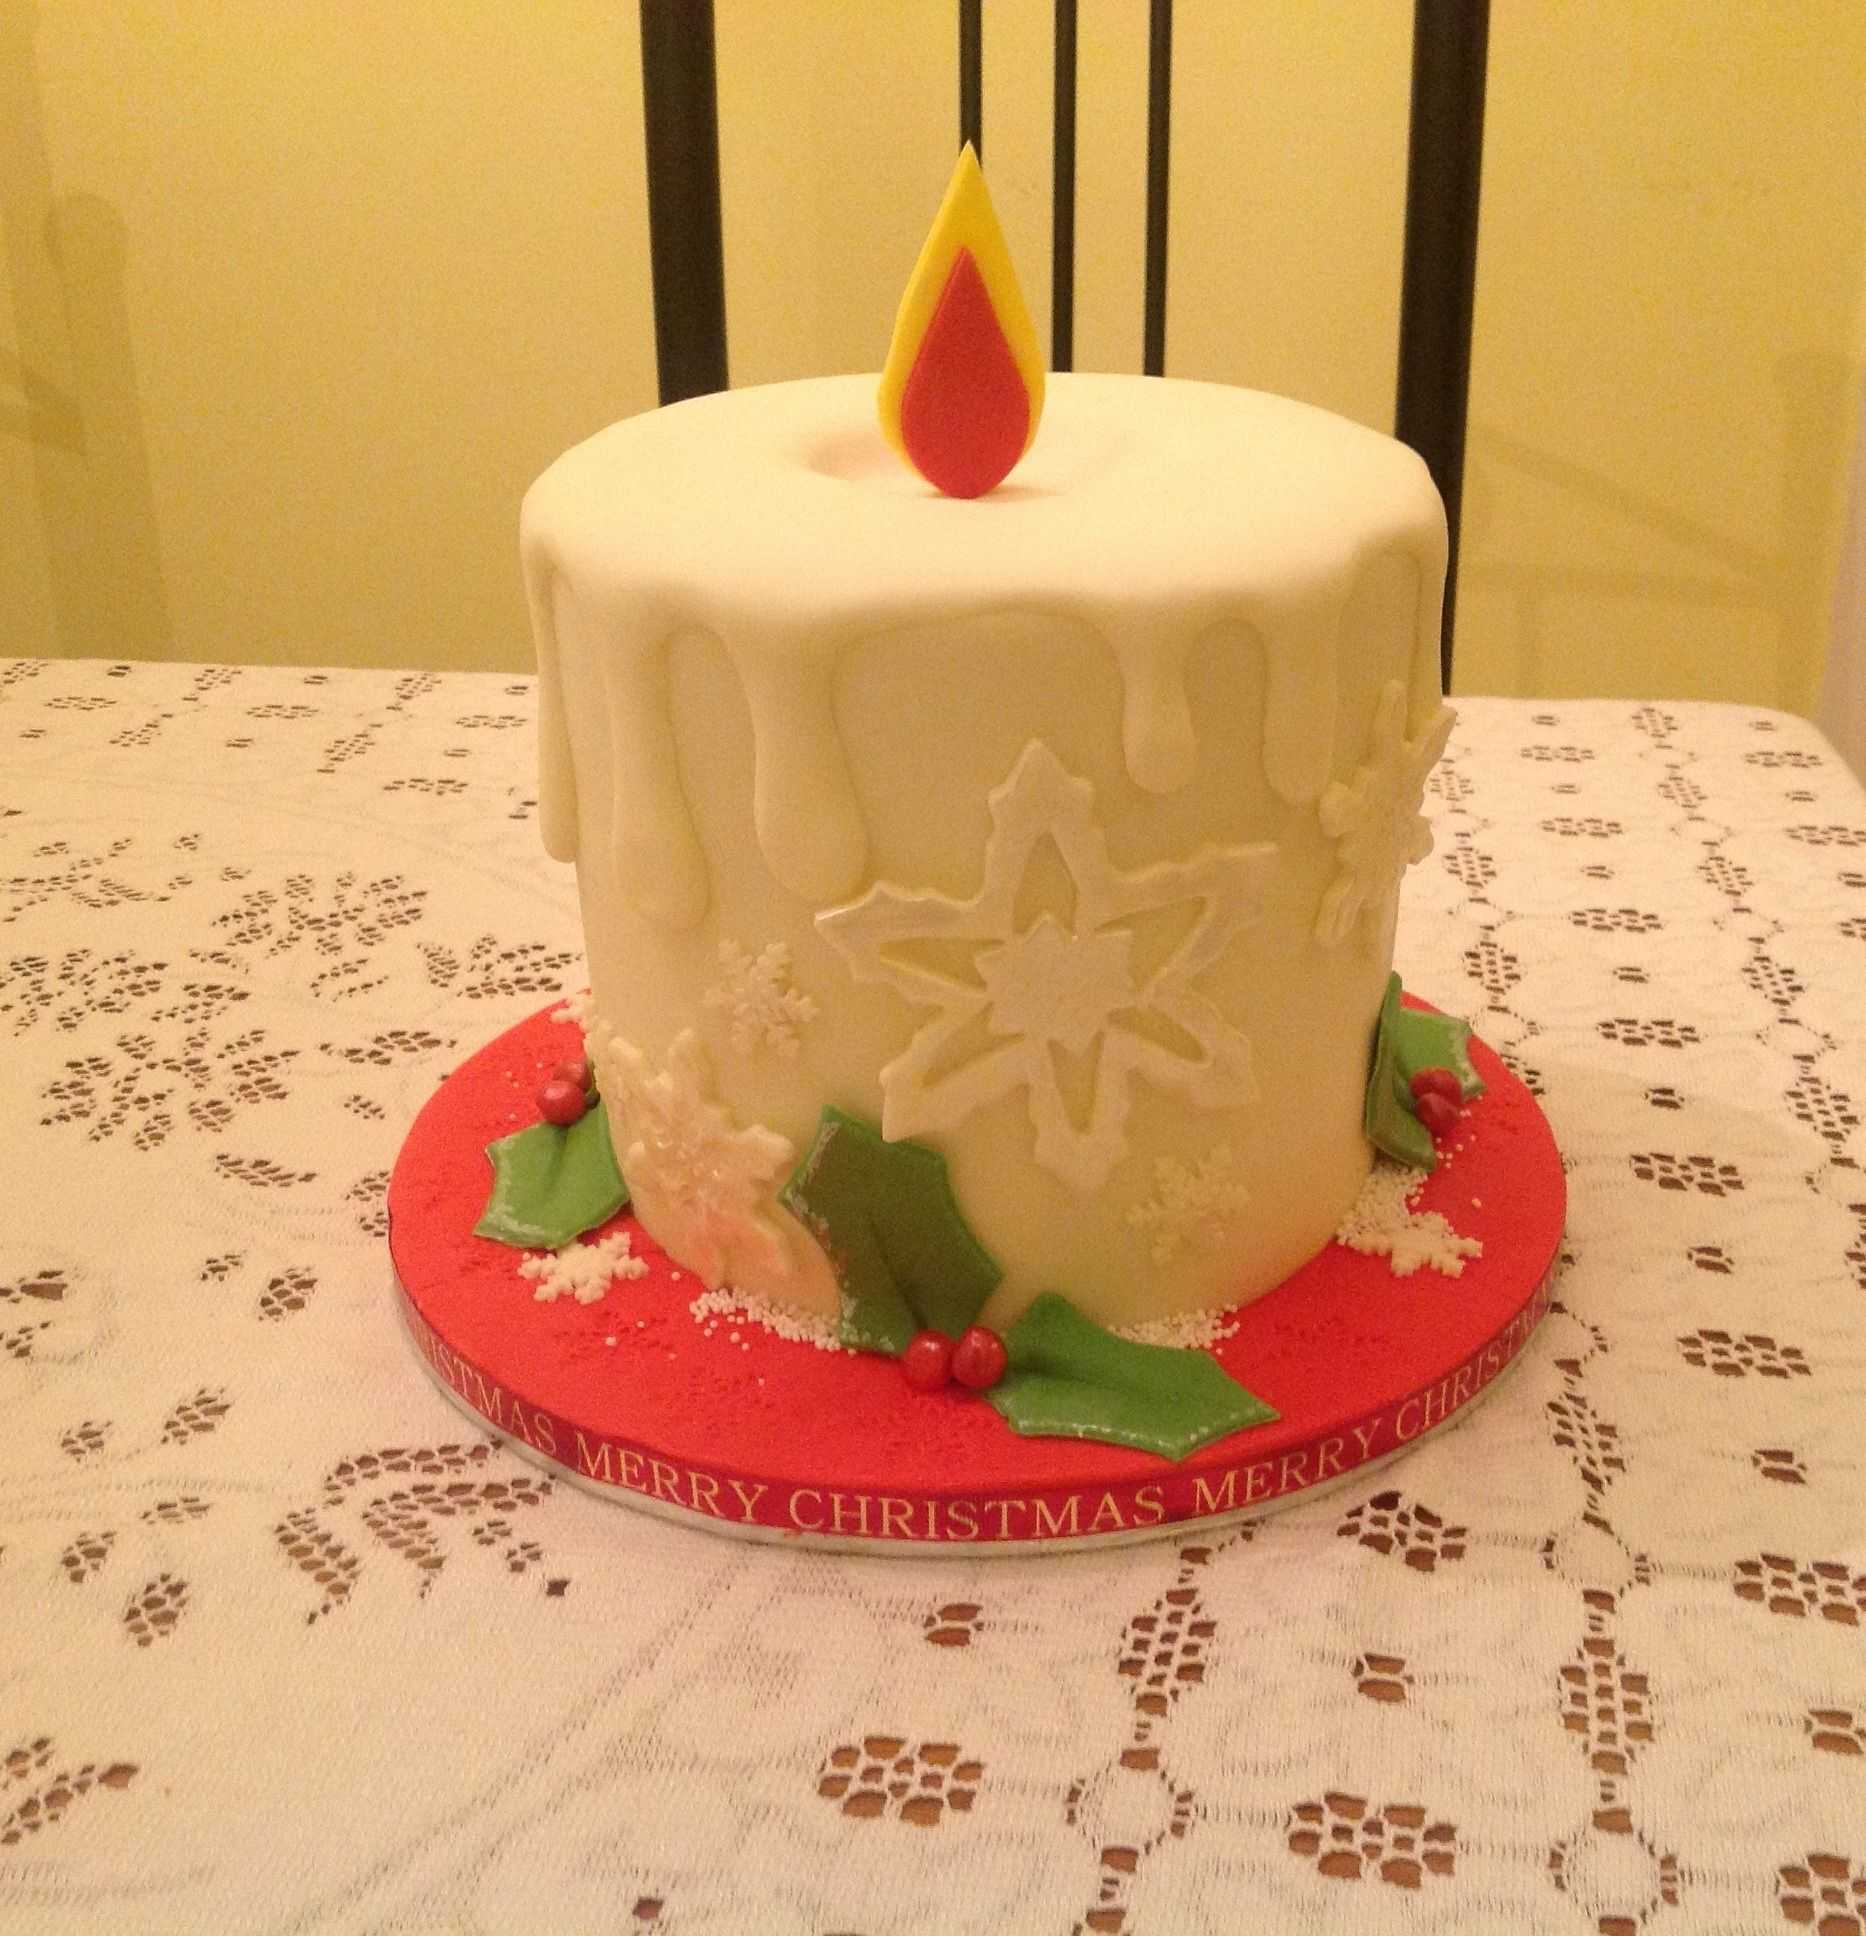 Christmas Candle Cake Images : Candle Christmas Cake Creative cakes! Pinterest